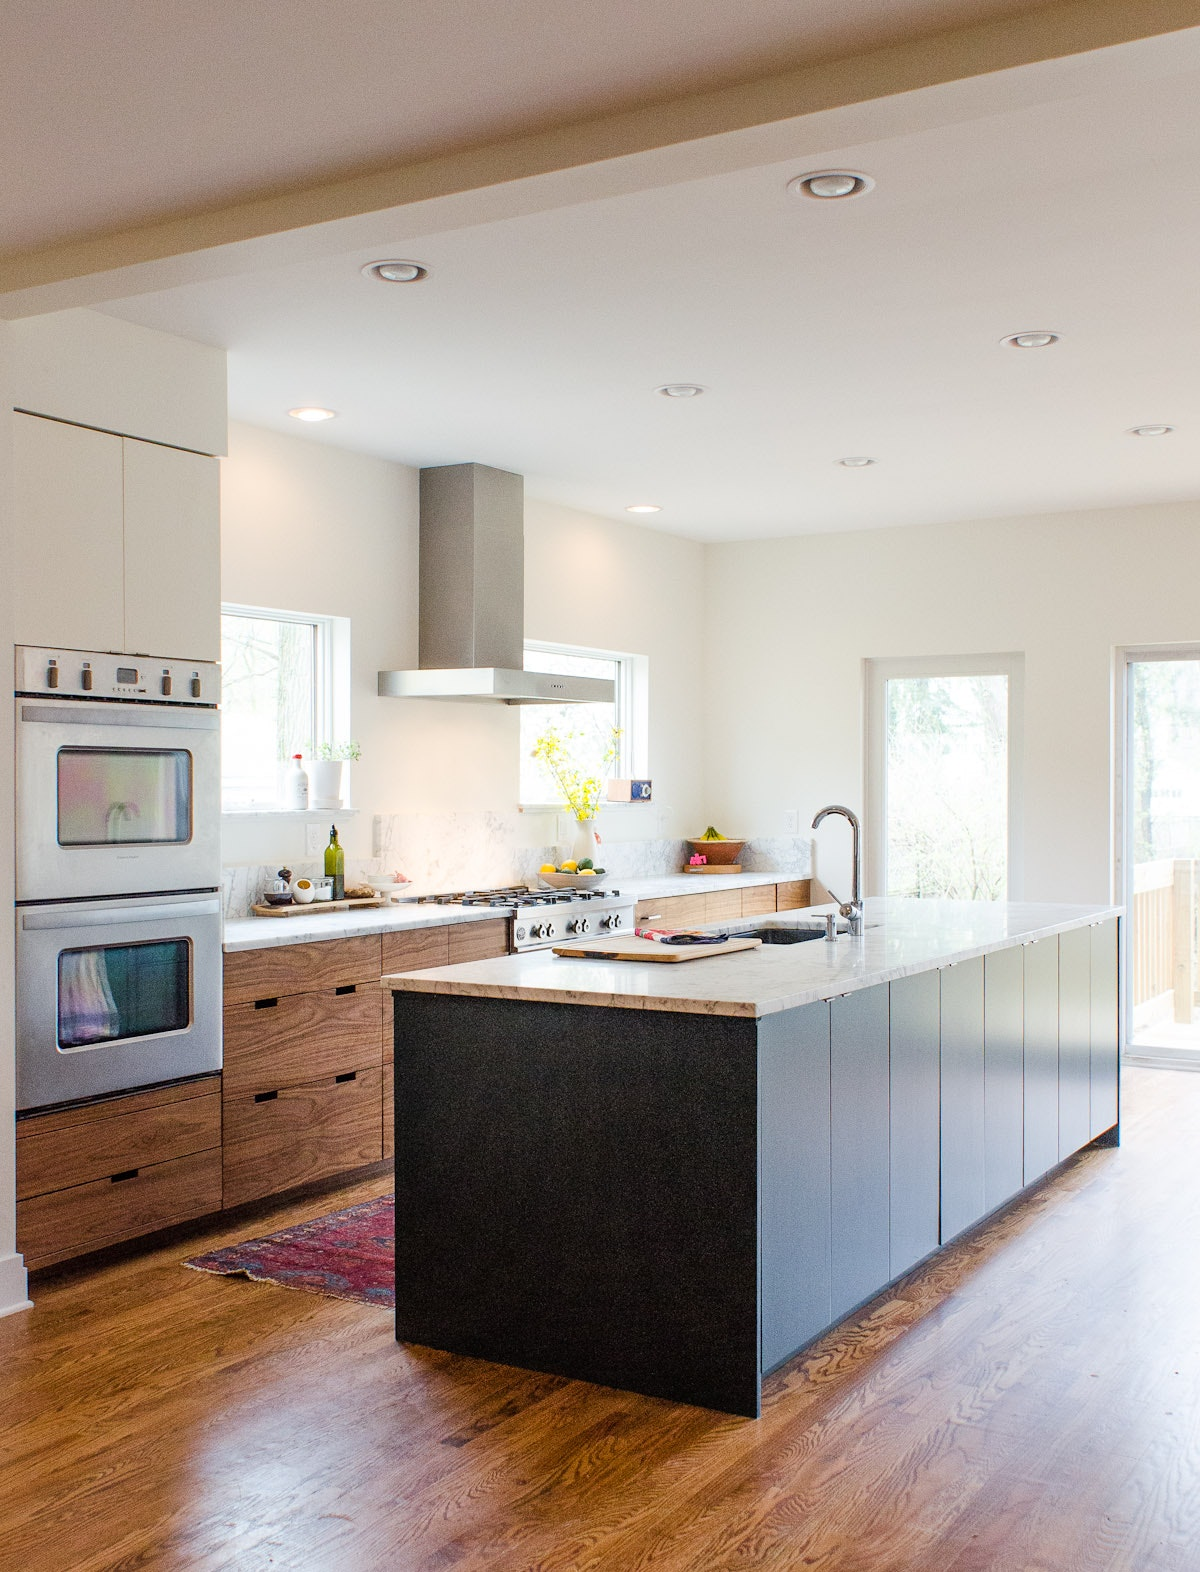 Design a kitchen for entertaining with an IKEA buffet area